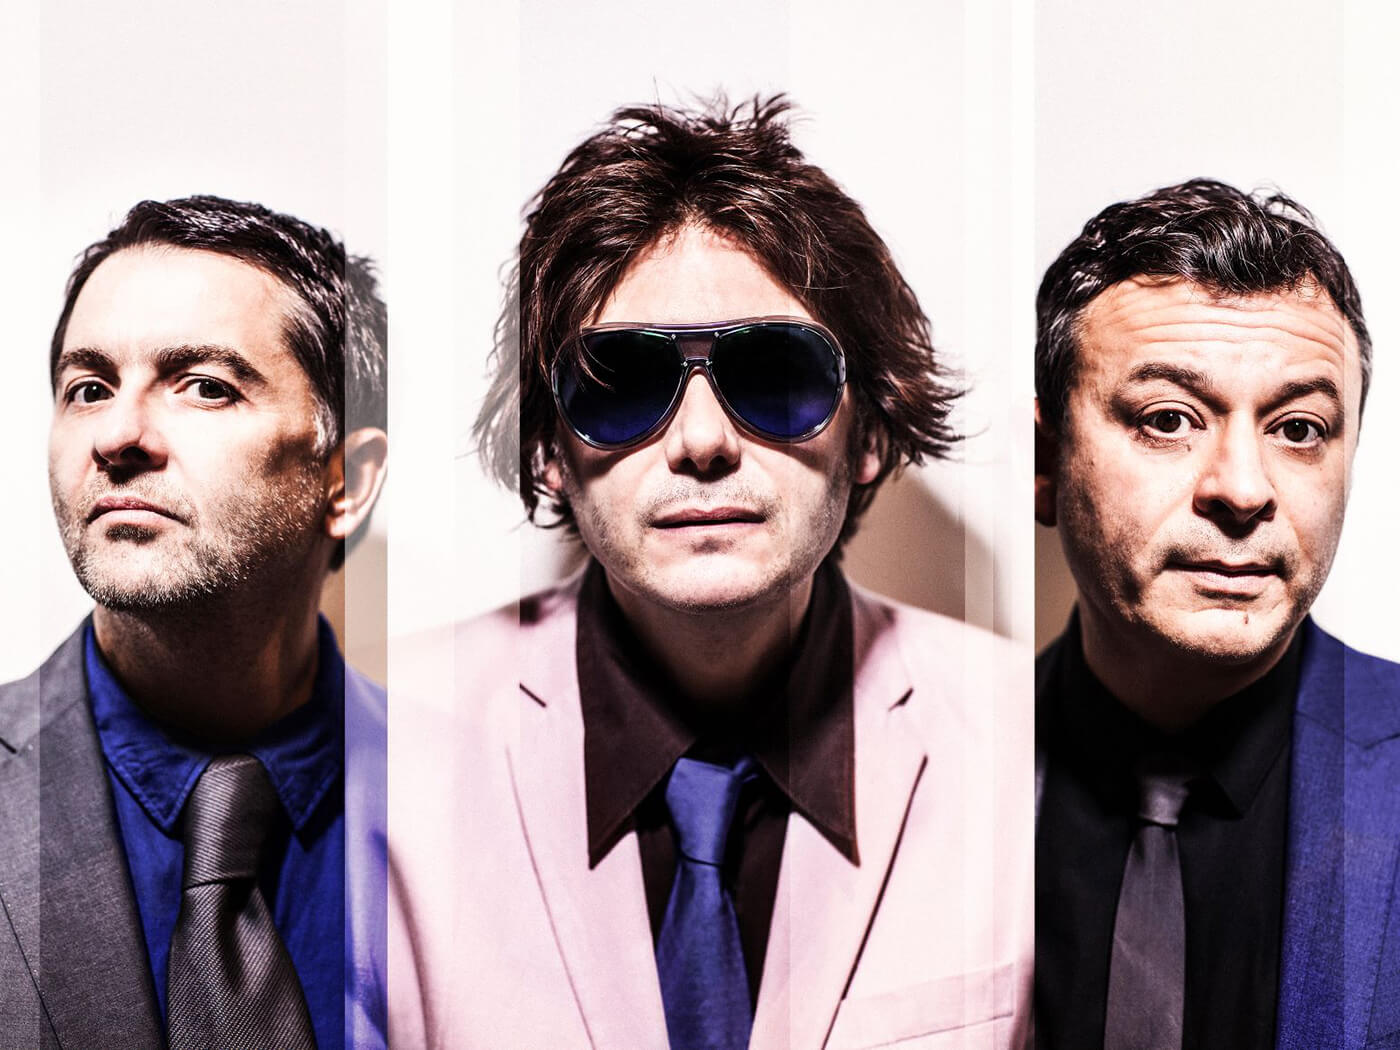 Manic Street Preachers to play NHS benefit shows in Cardiff